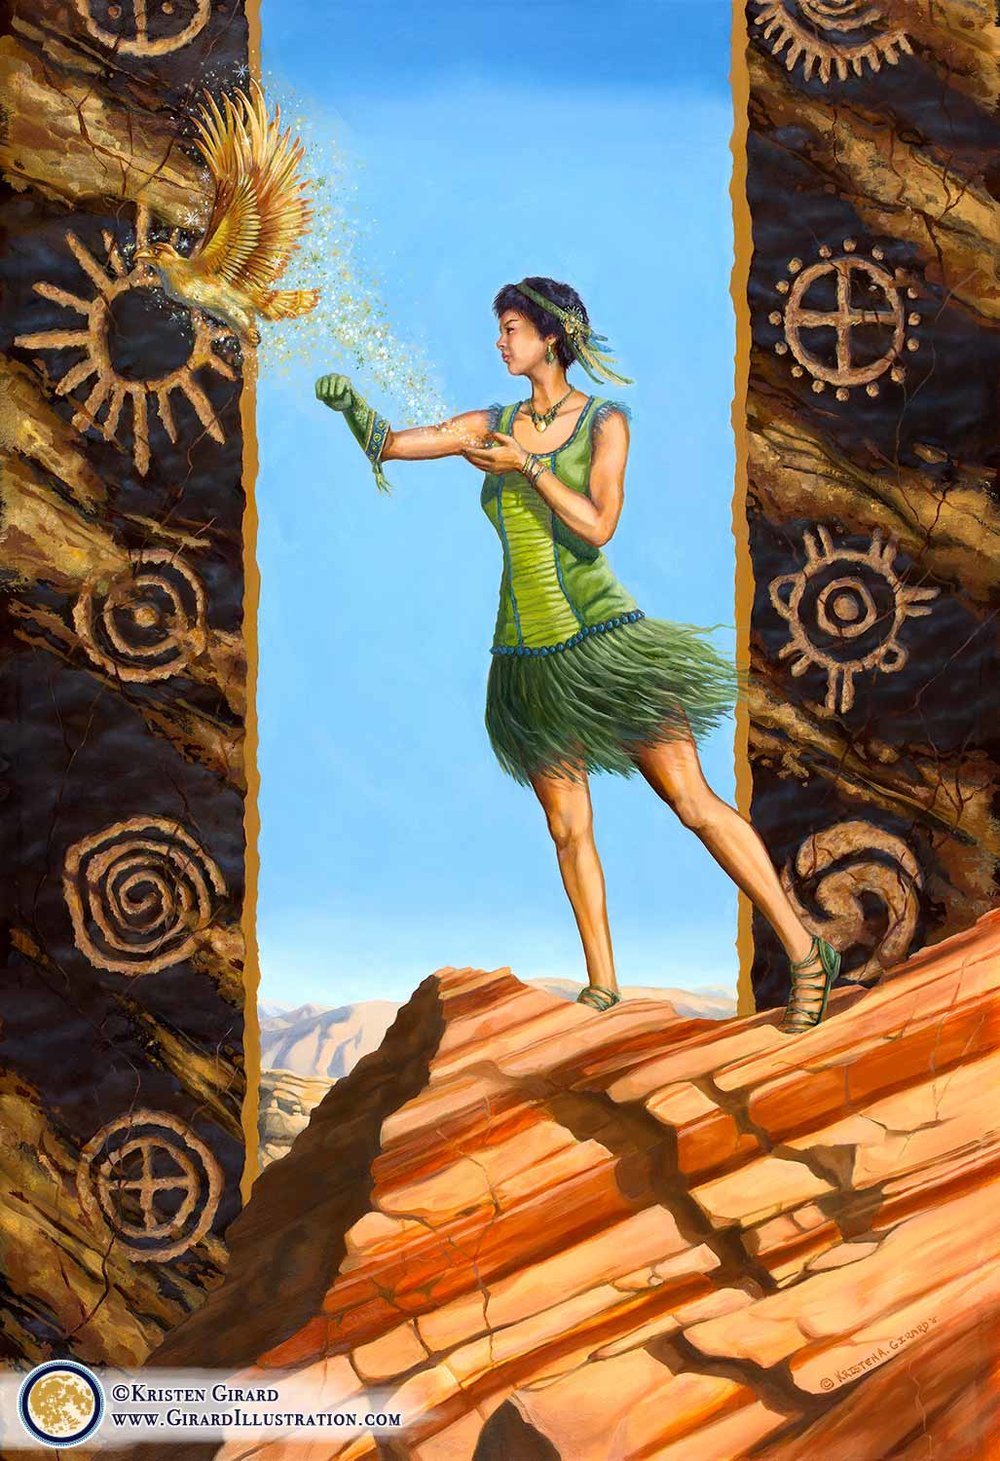 The goddess known as Mother Earth creates life in the desert. This life giving goddess wears a green decoration in her hair, a green dress made of natural fibers, and a hawking glove. She is releasing a golden bird of prey into the air. Symbols of the sun are carved into rock behind the goddess of the earth and creation. © Kristen Girard. Oil Painting. Canvas art print available in the  Art Shop .